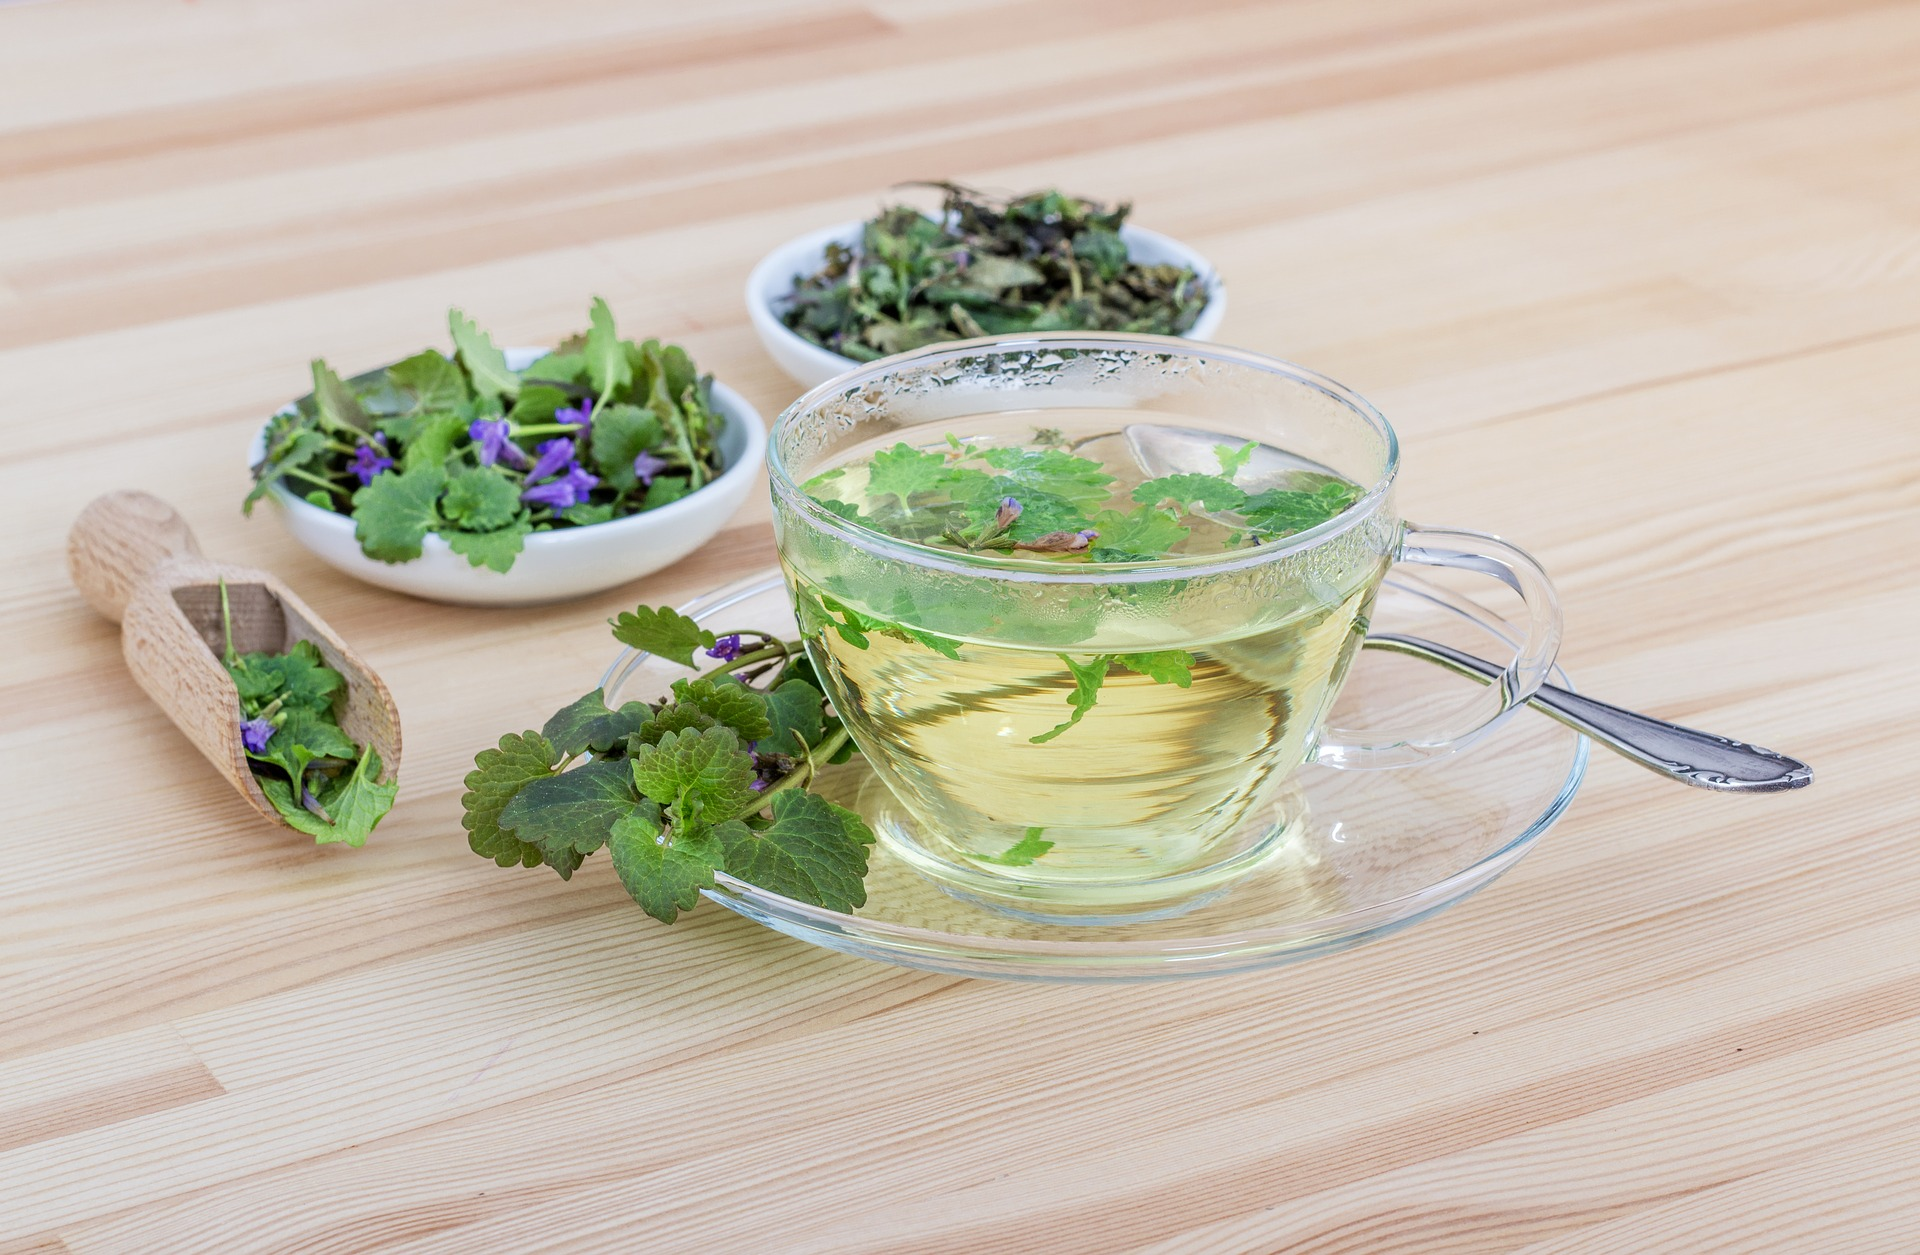 15 Tea Herbs to Grow At Home for Powerful Health Benefits